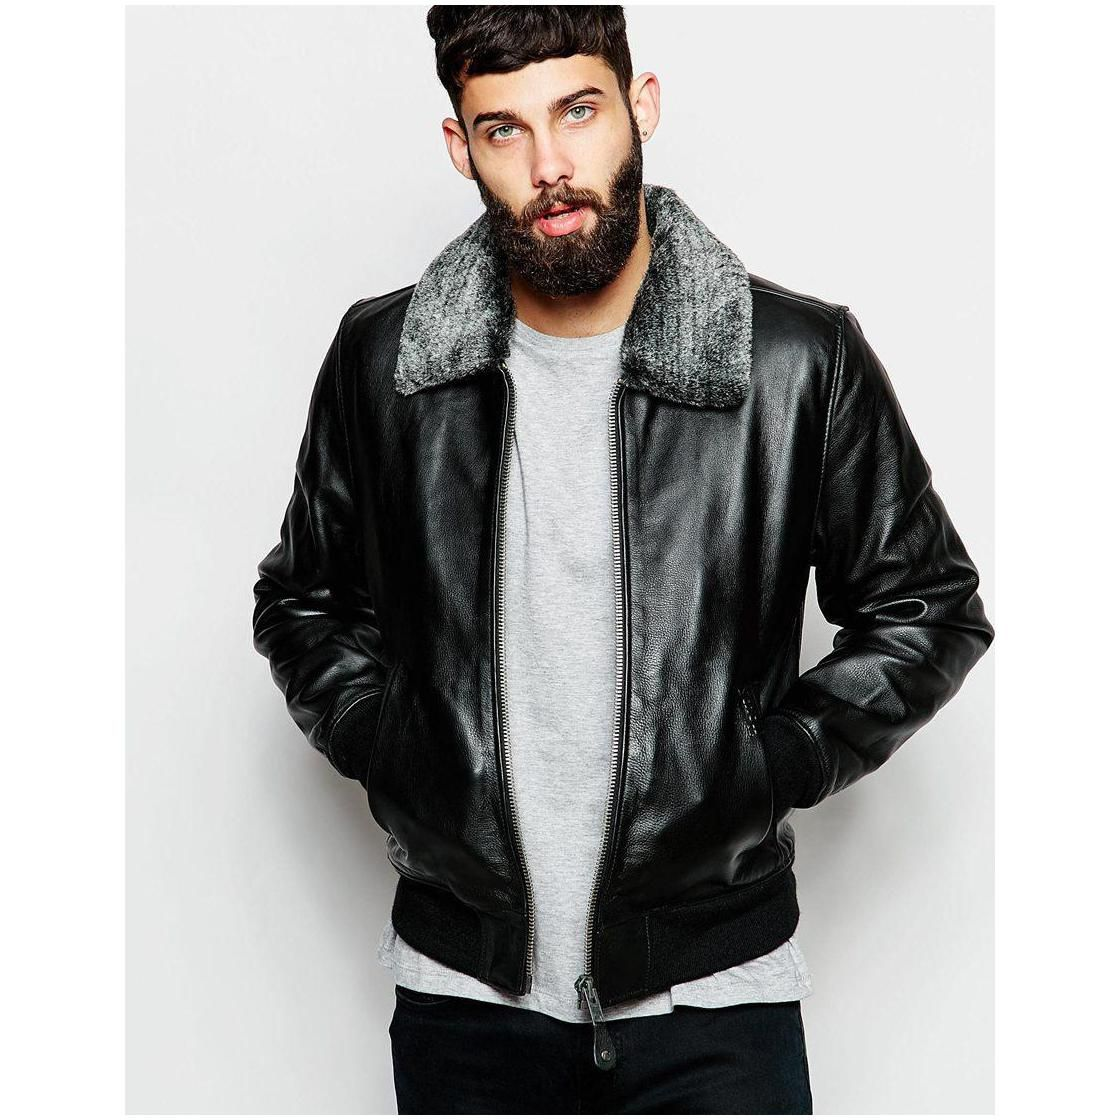 c446225b5e56 Schott Men's Leather Bomber Jacket with Faux Fur Collar ...